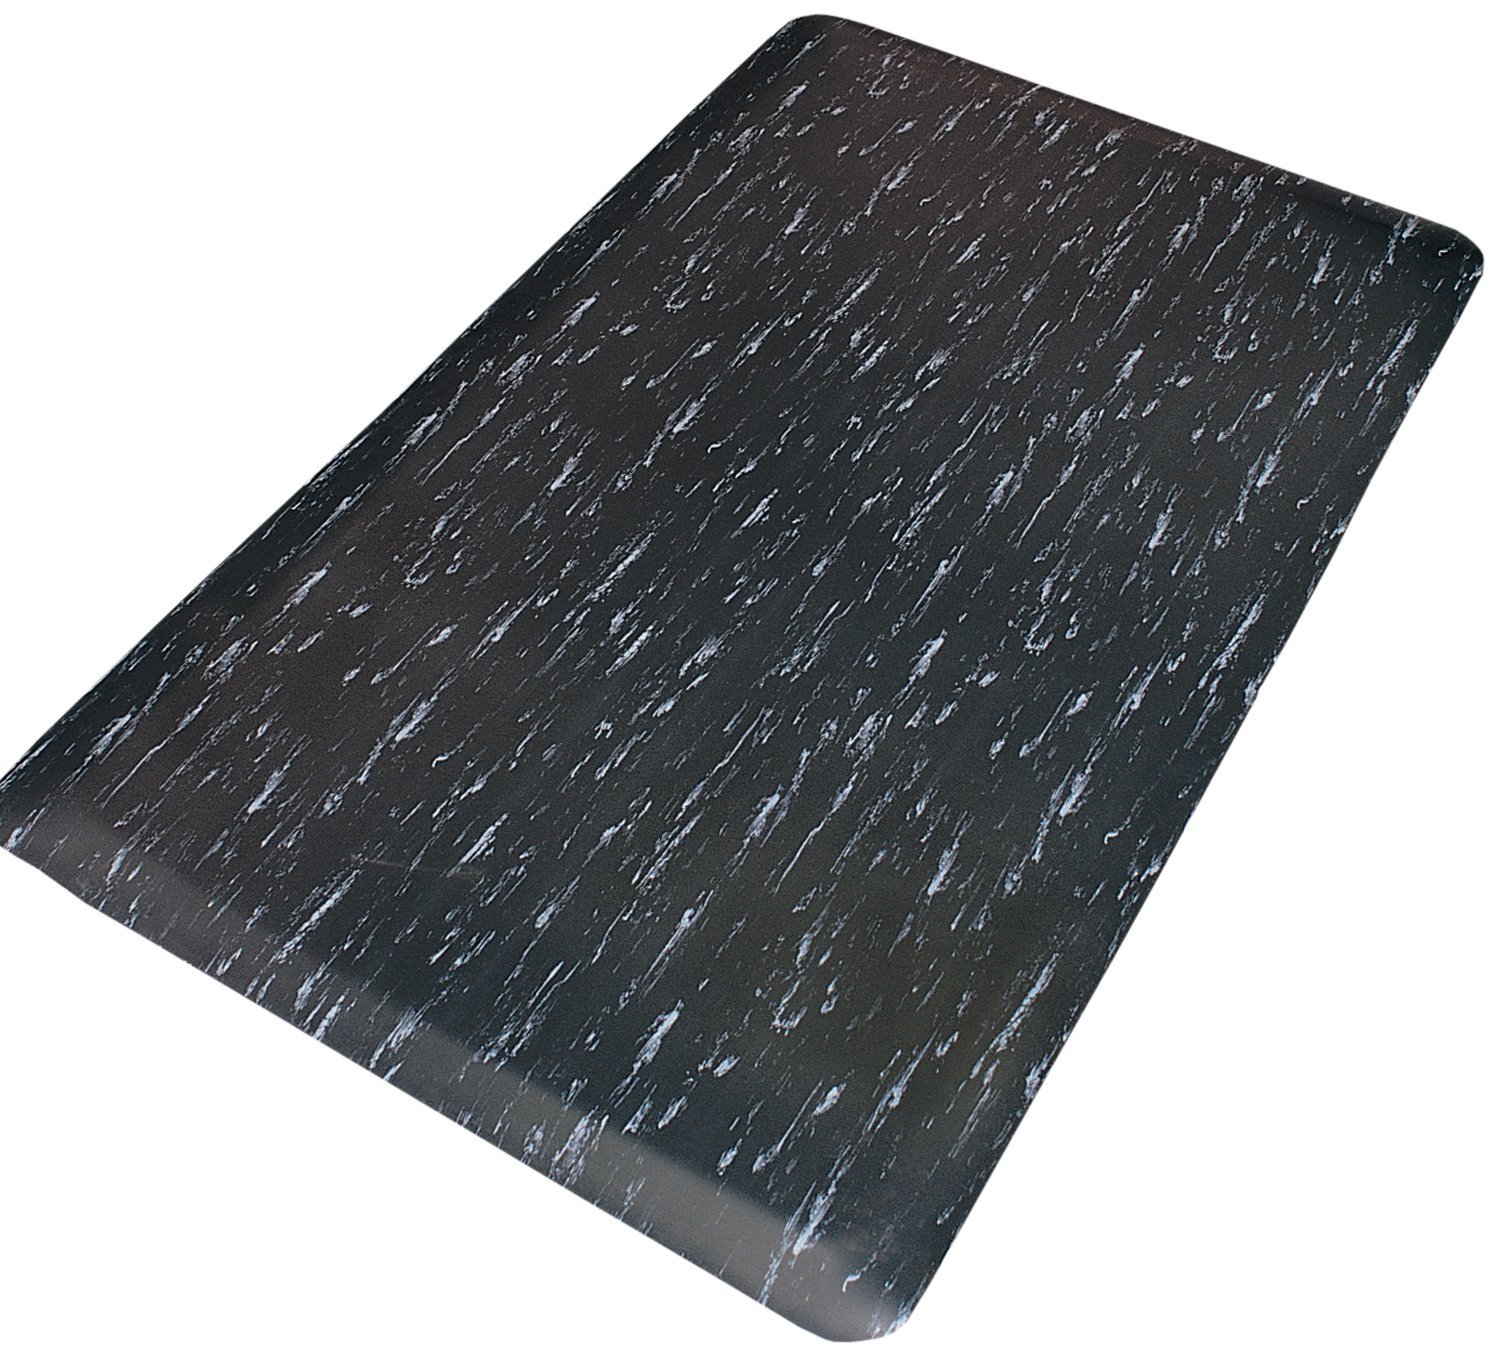 Rhino Mats TT-1848DSBW Marbleized Tile Top Anti-Fatigue Mat, 18'' Width x 48'' Length x 7/8'' Thickness, Black/White